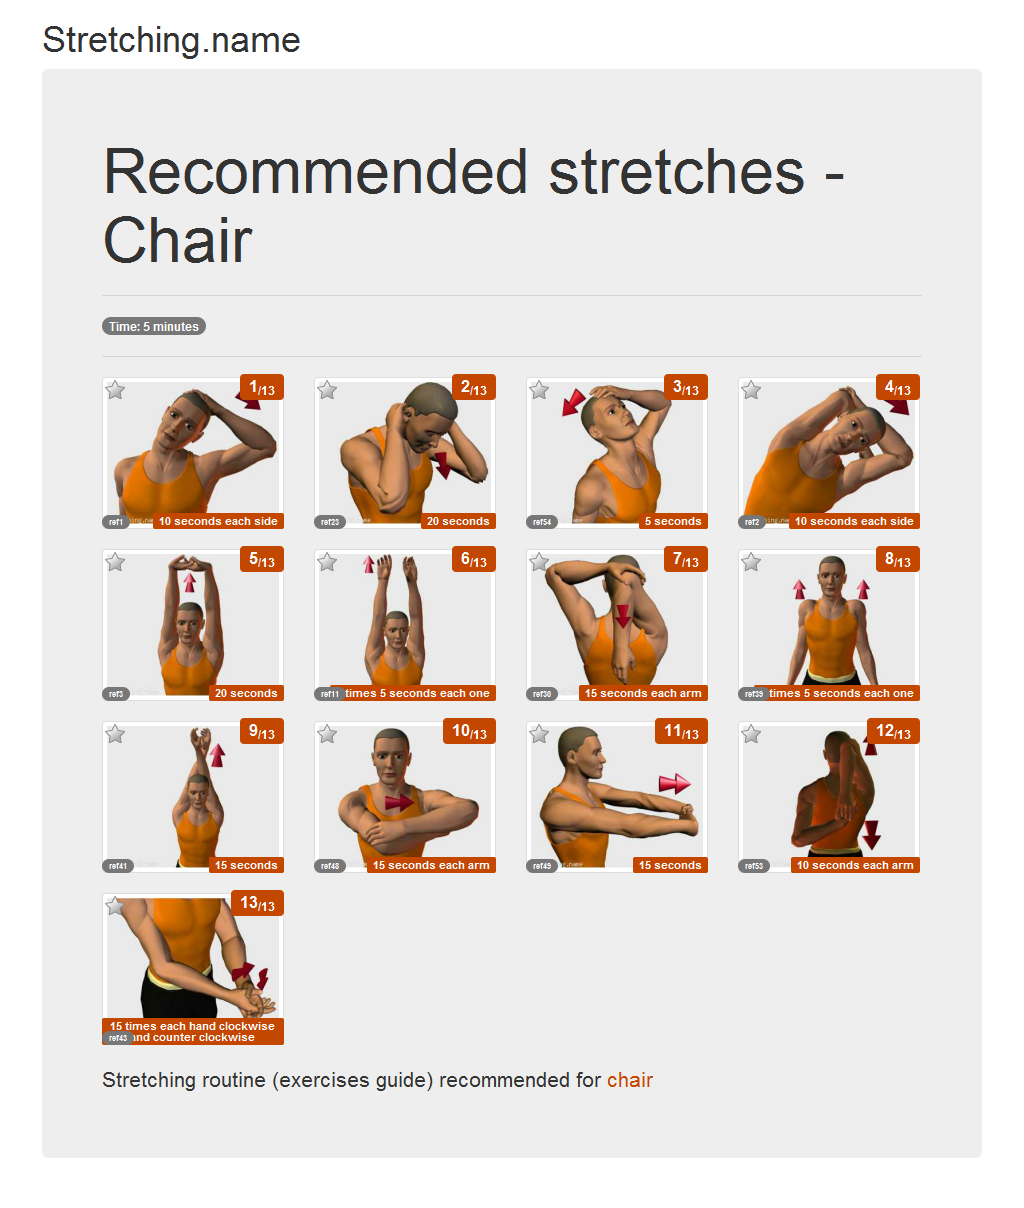 Download stretching posters Chair  sc 1 st  Stretching.name & Stretching.name - Stretching posters - Chair